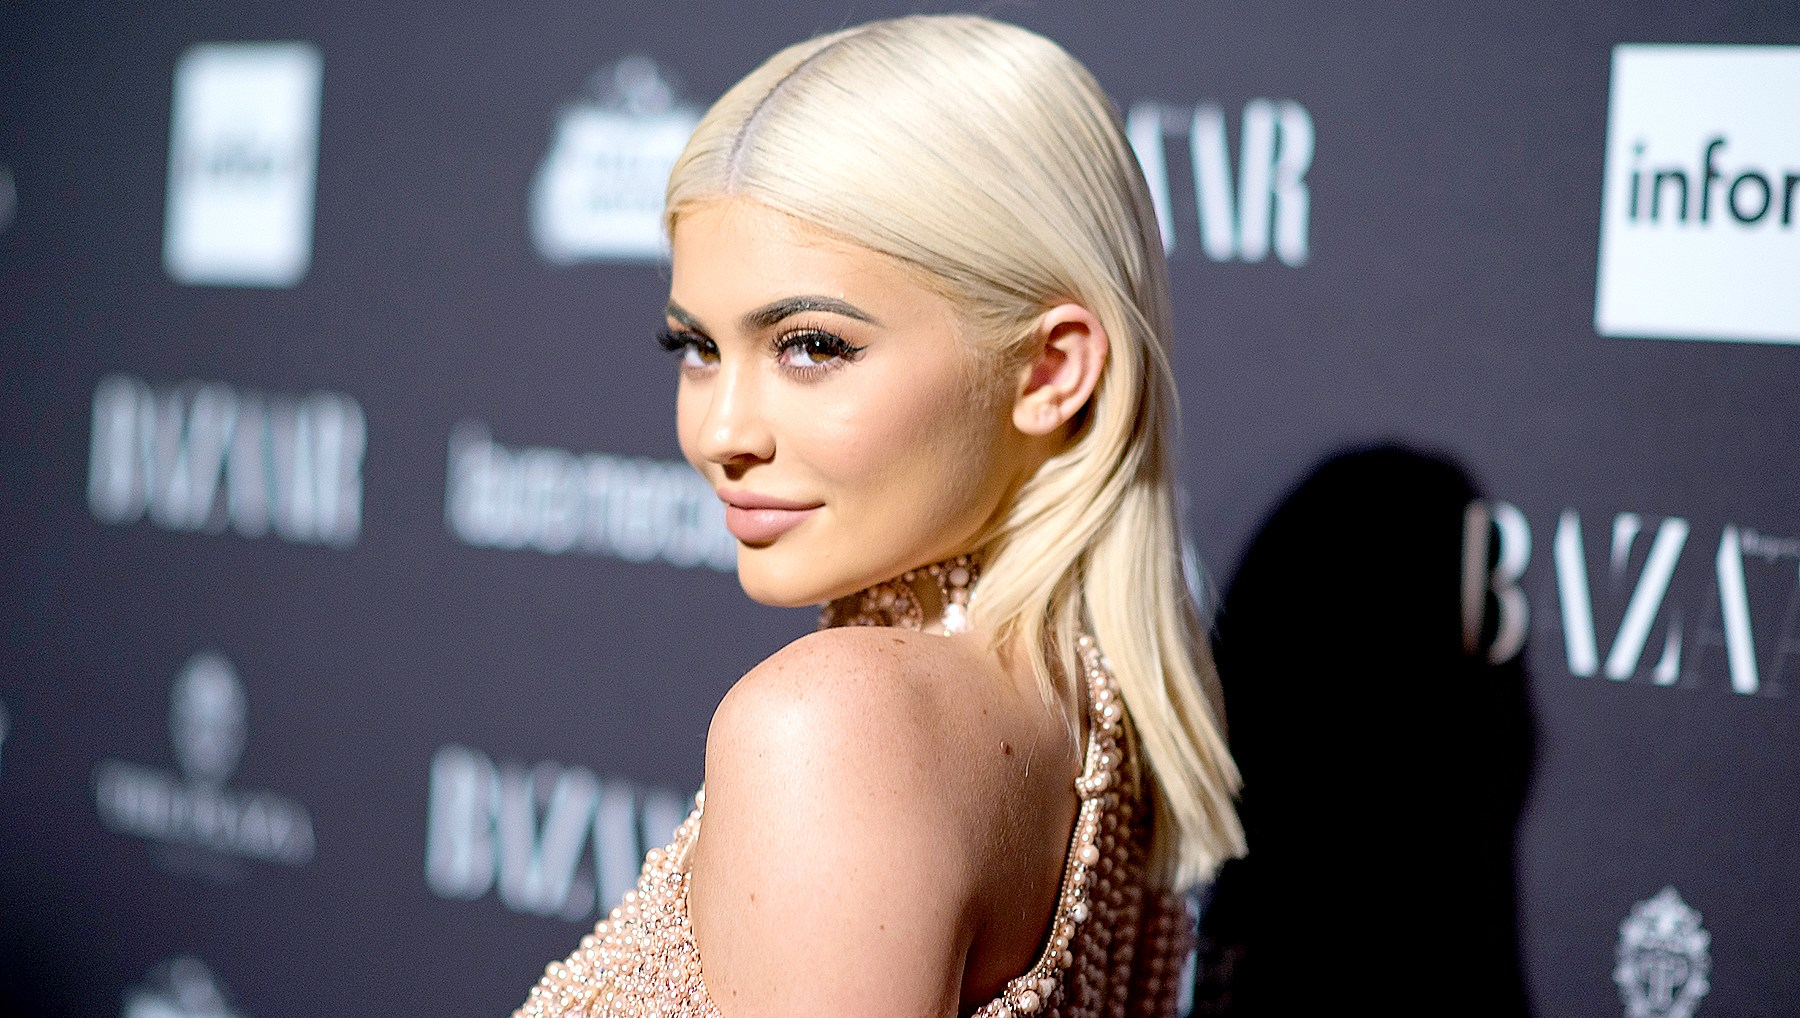 Kylie-Jenner-Made-$420-Million-in-18-Months